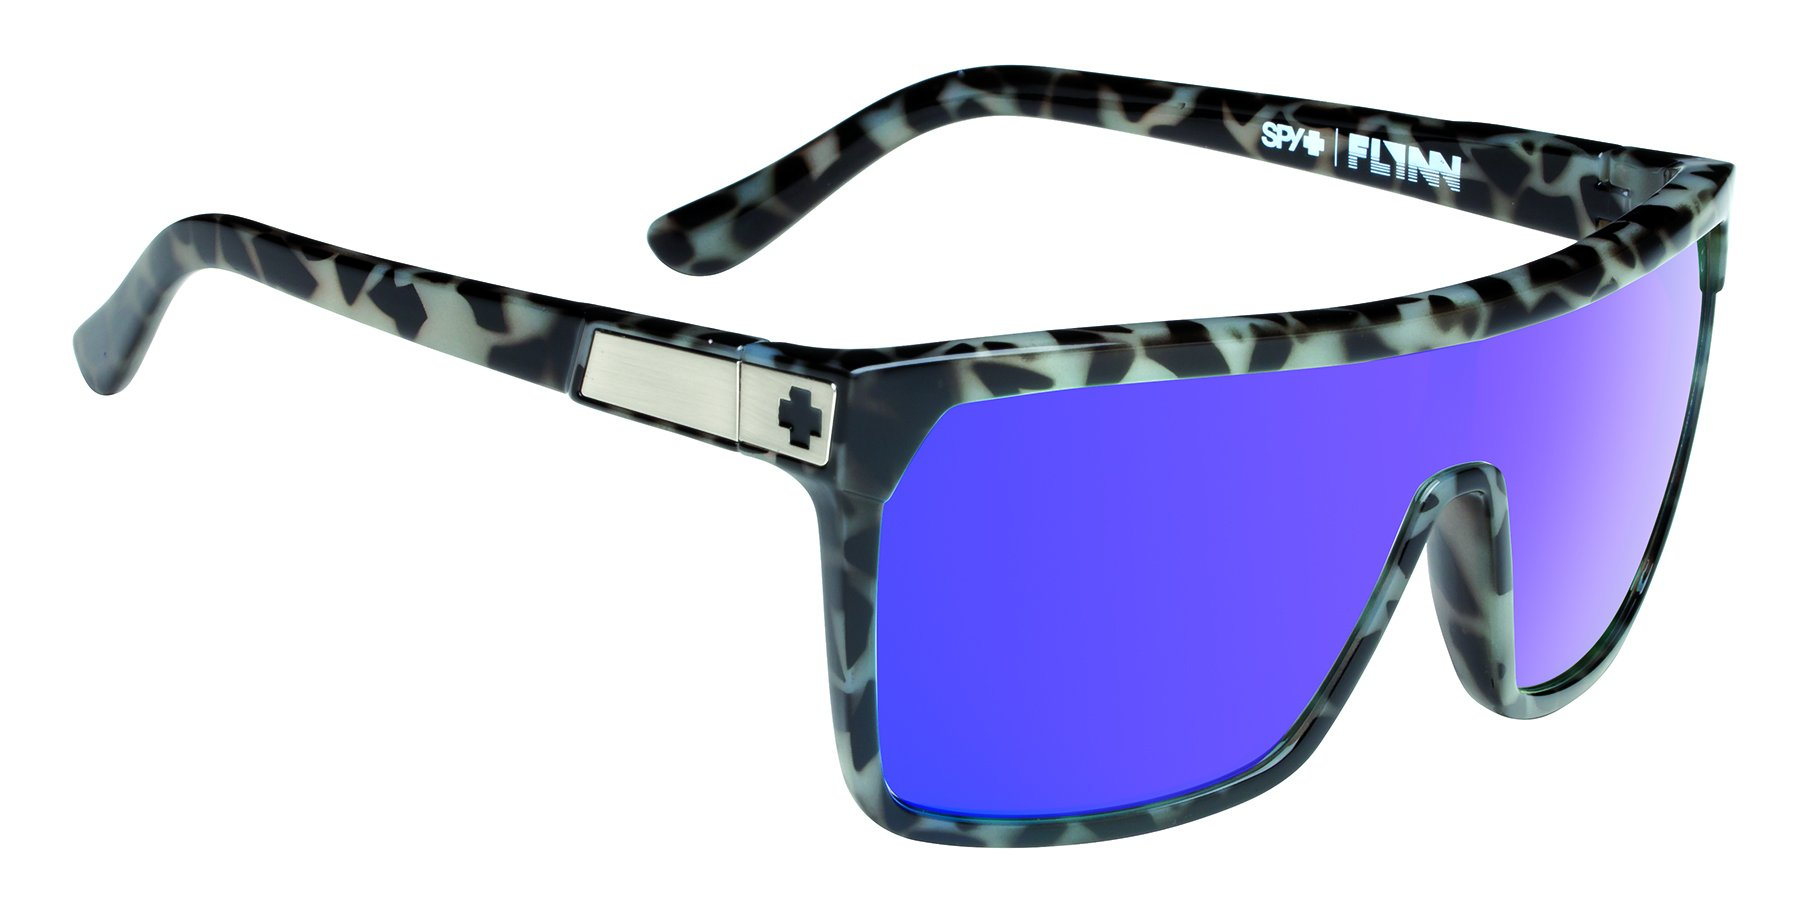 2d99adc8f3 Galleon - Spy Optic Flynn 670323123366 Wrap Sunglasses